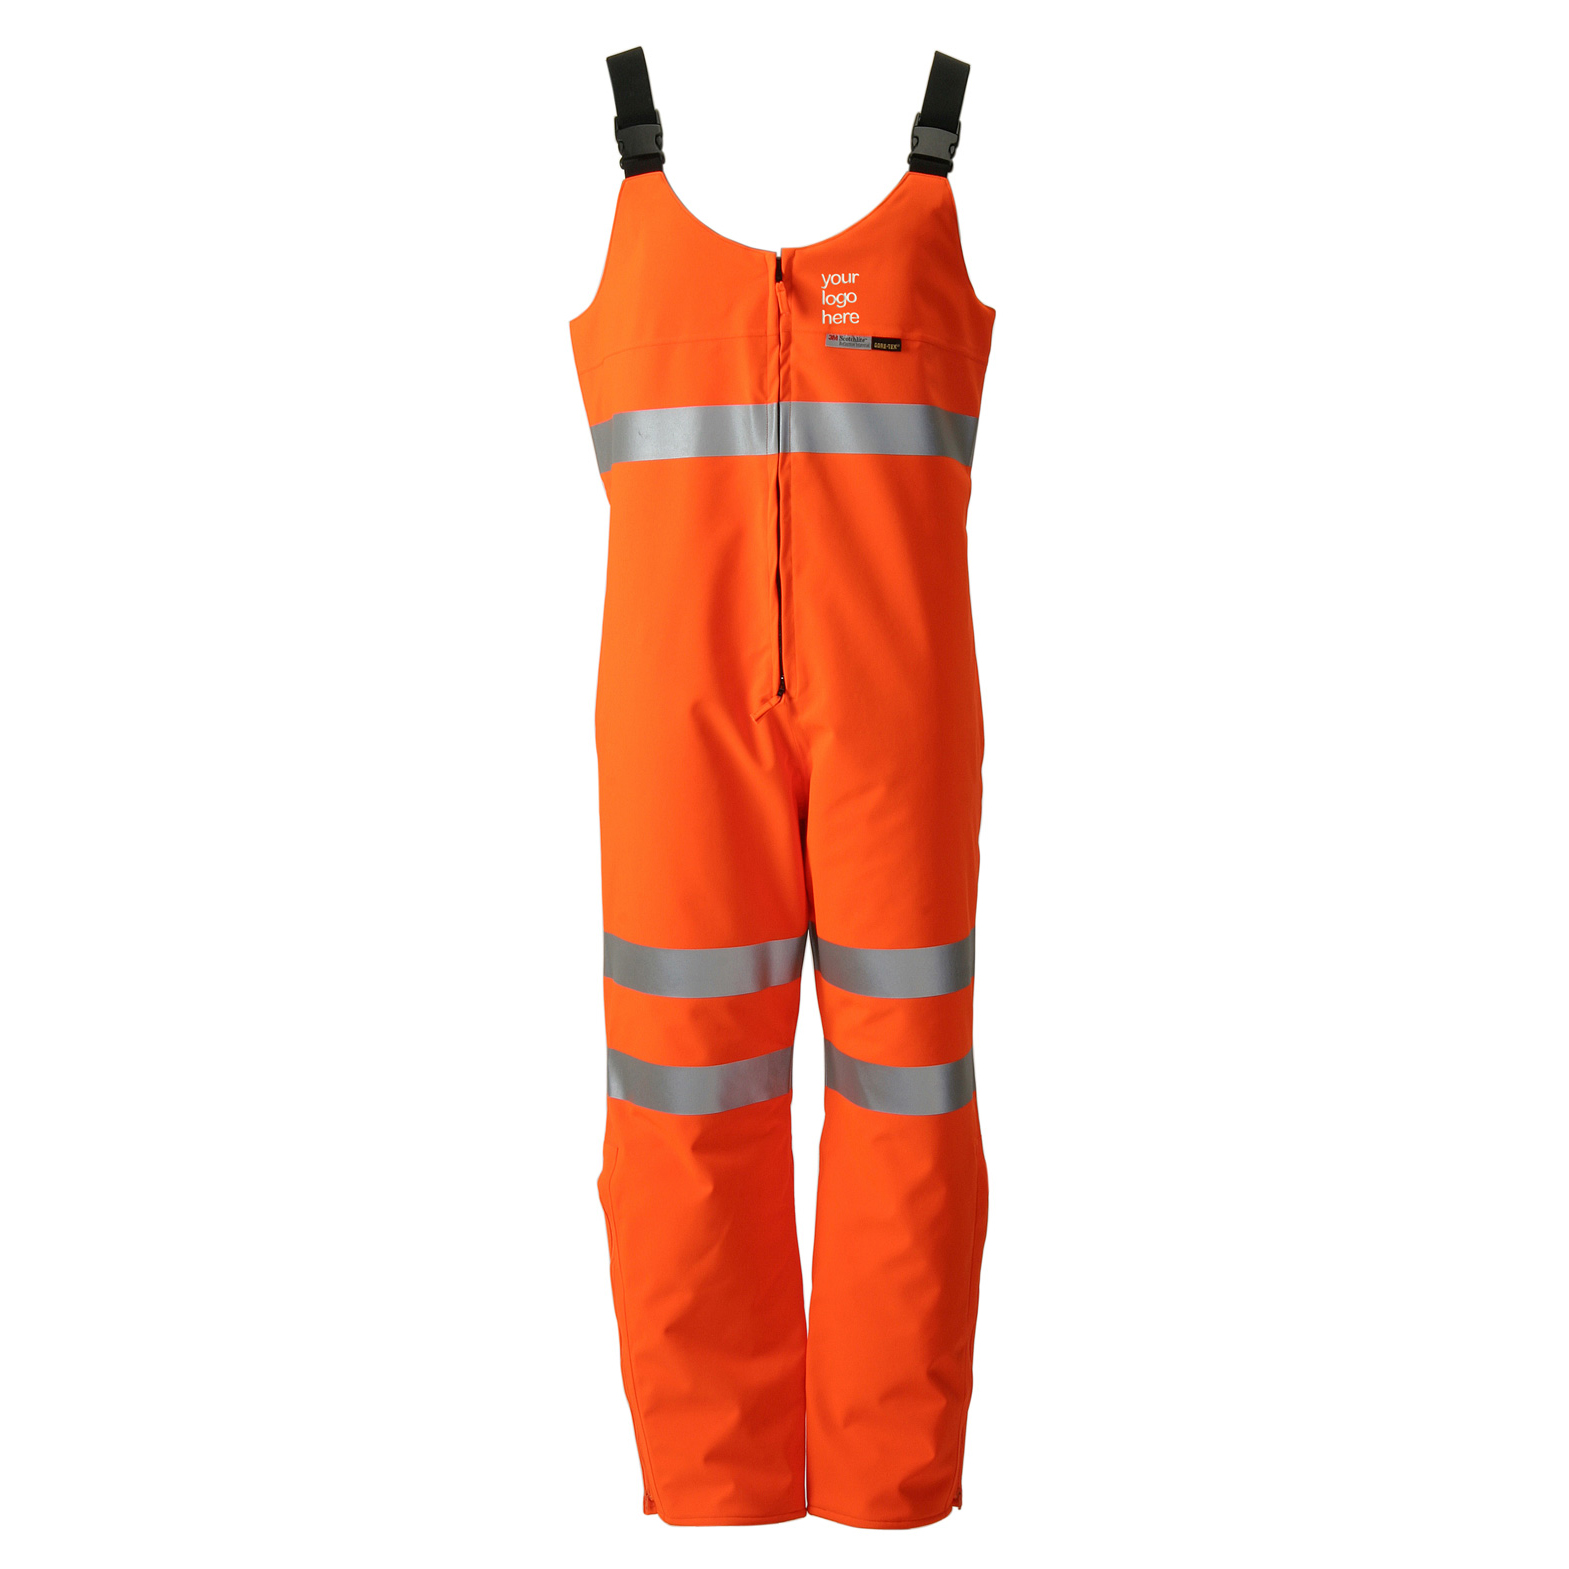 B-Seen Gore-Tex Foul Weather Salopette Orange S Ref GTHV14ORS Up to 3 Day Leadtime